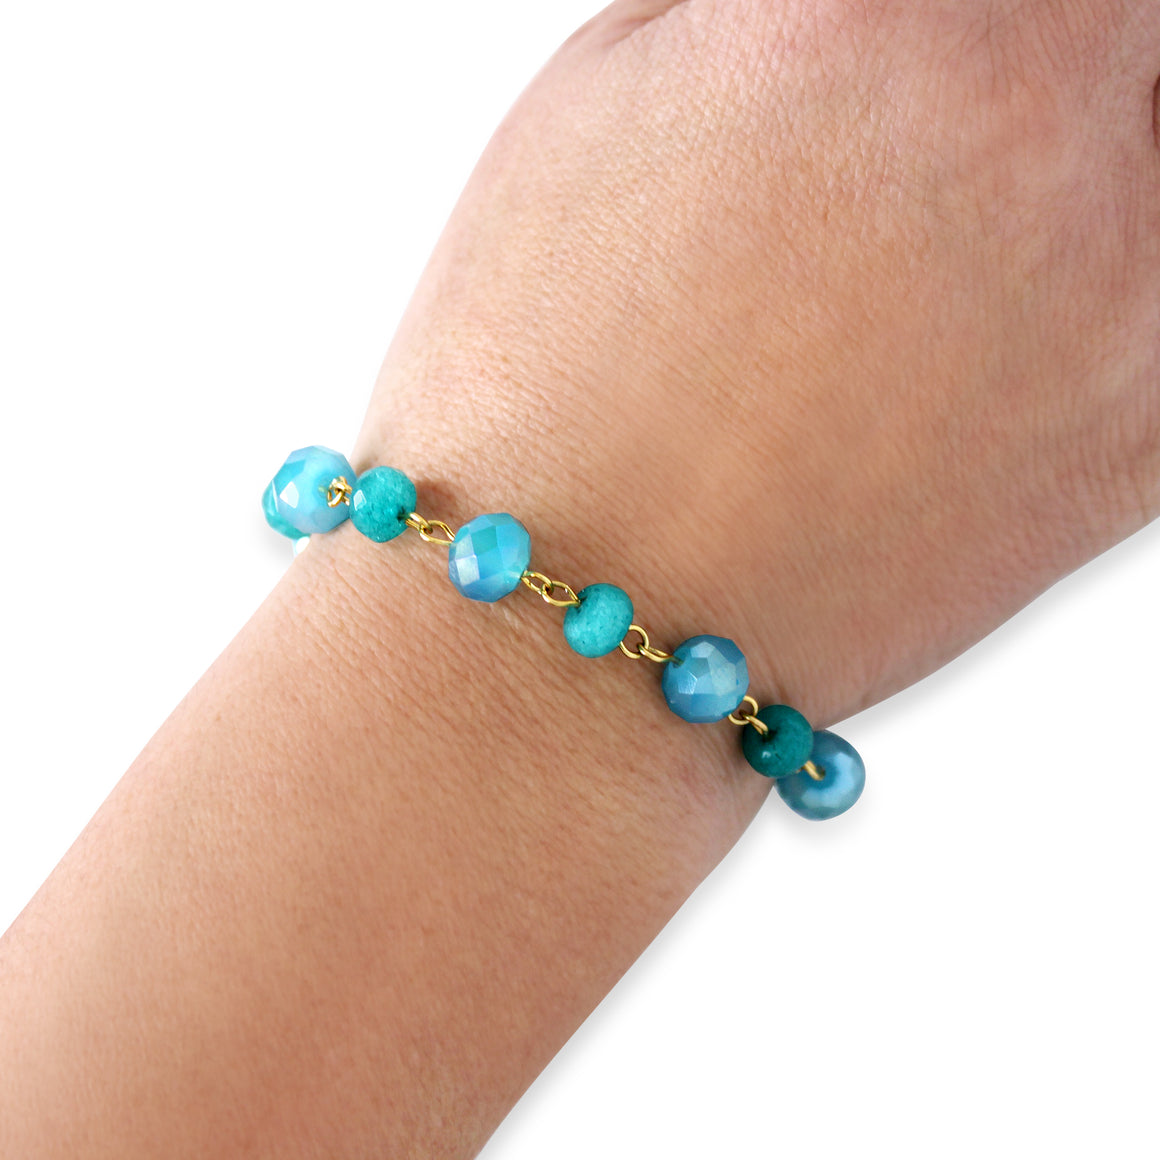 Bracelet Link - turquoise - choose magnet colour